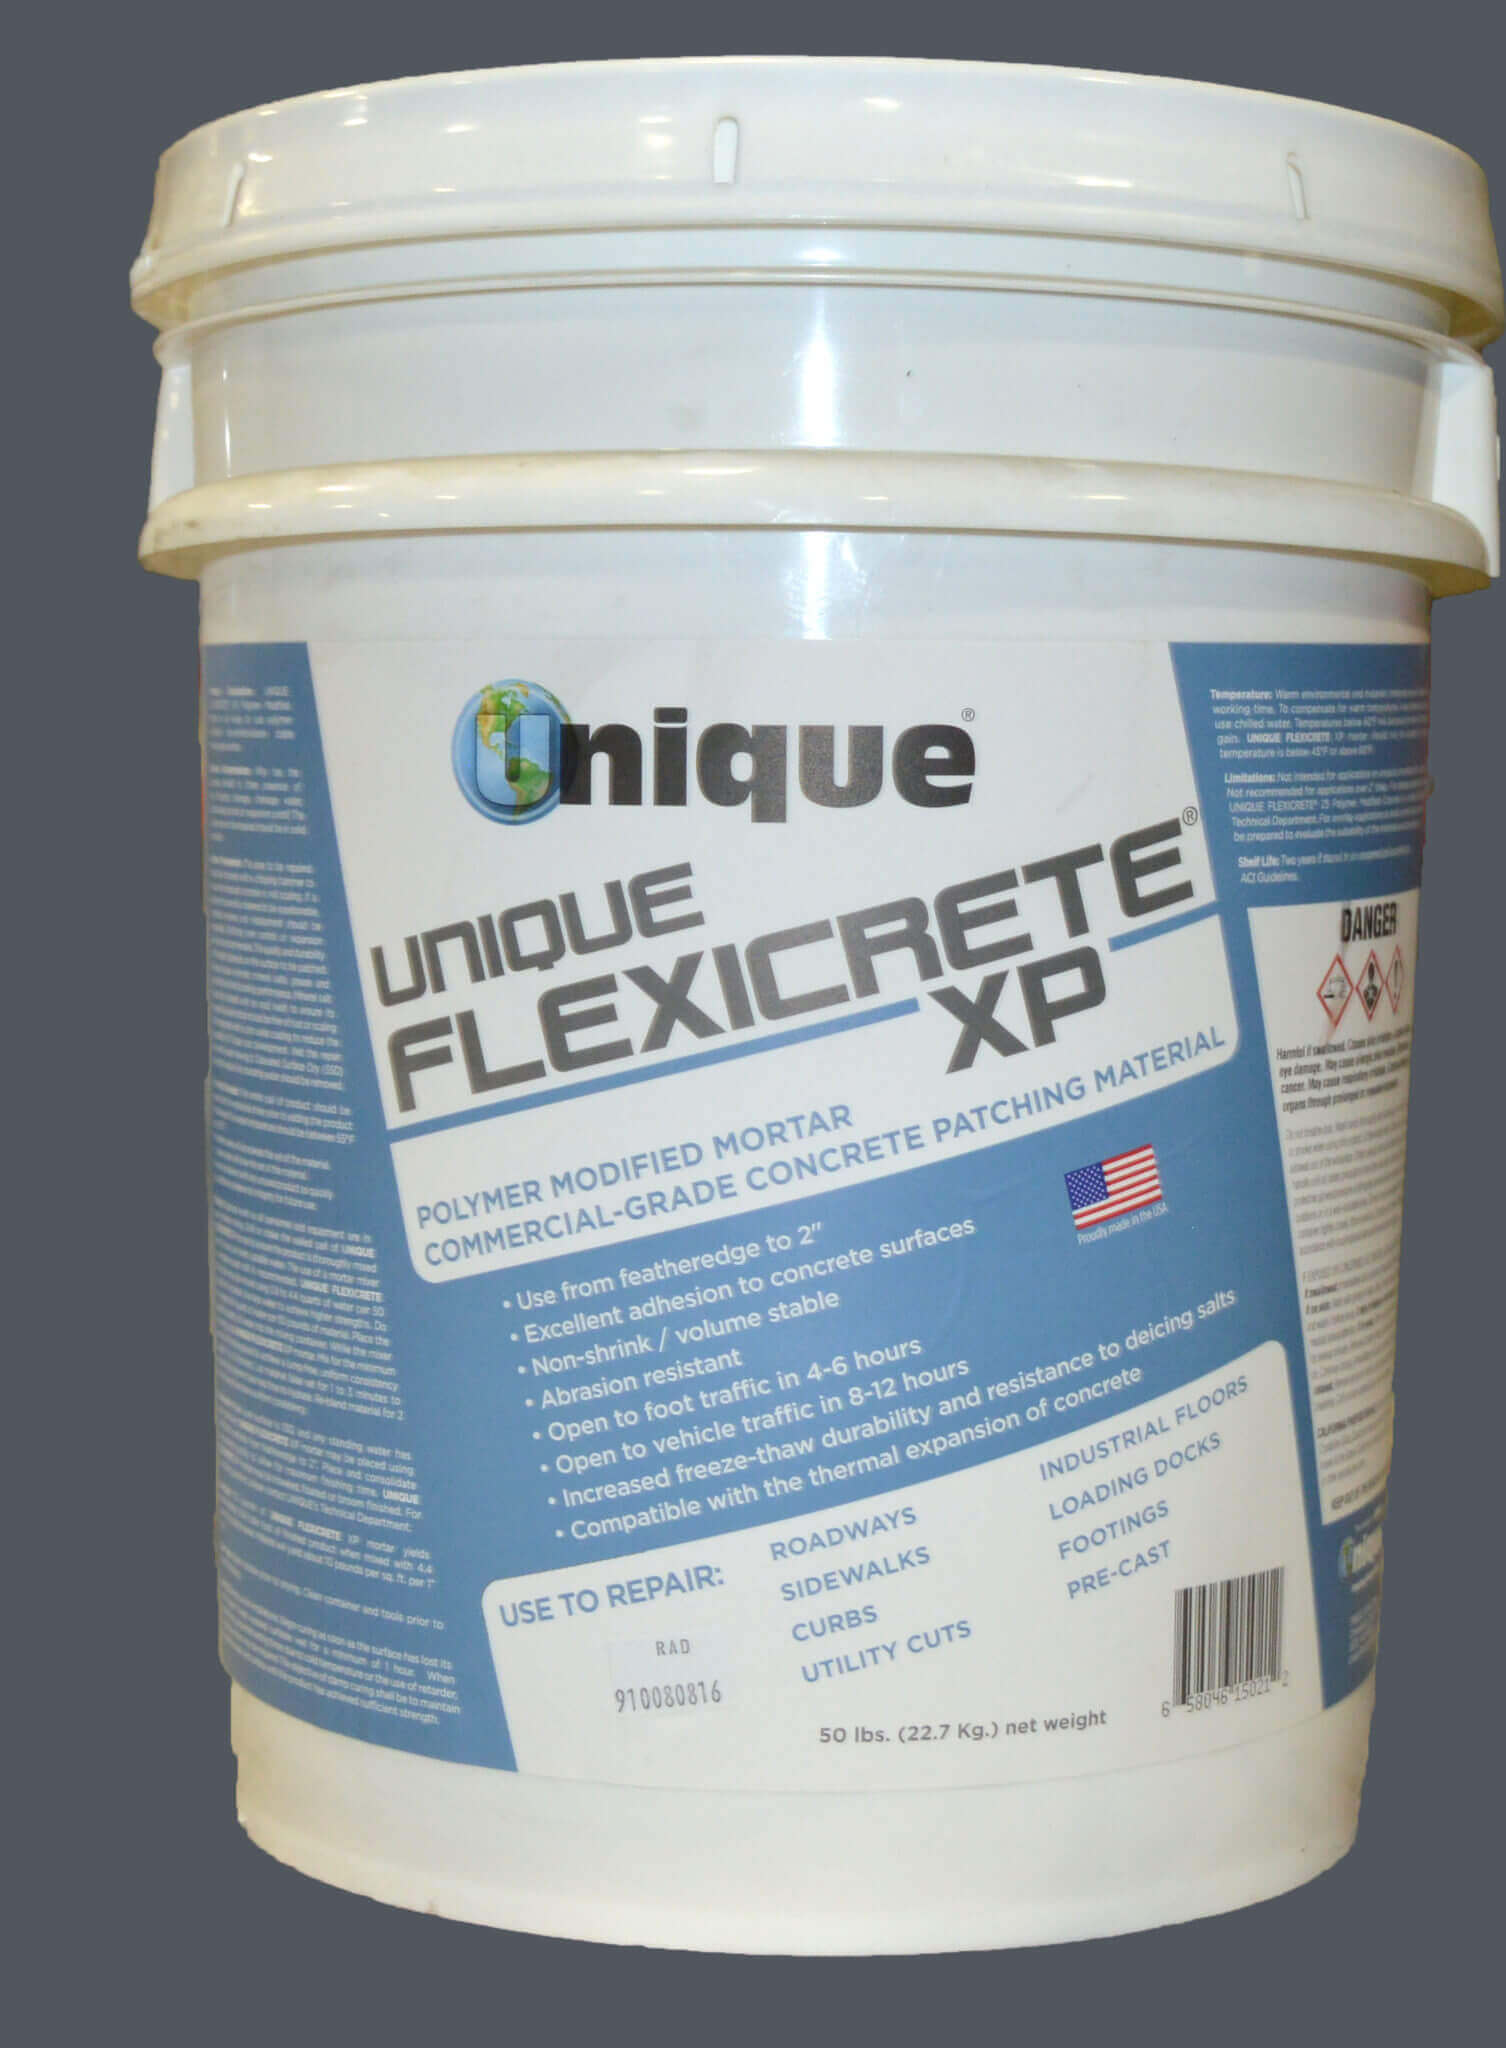 UNIQUE FLEXICRETE XP Polymer Modified Mortar 50lb Pail